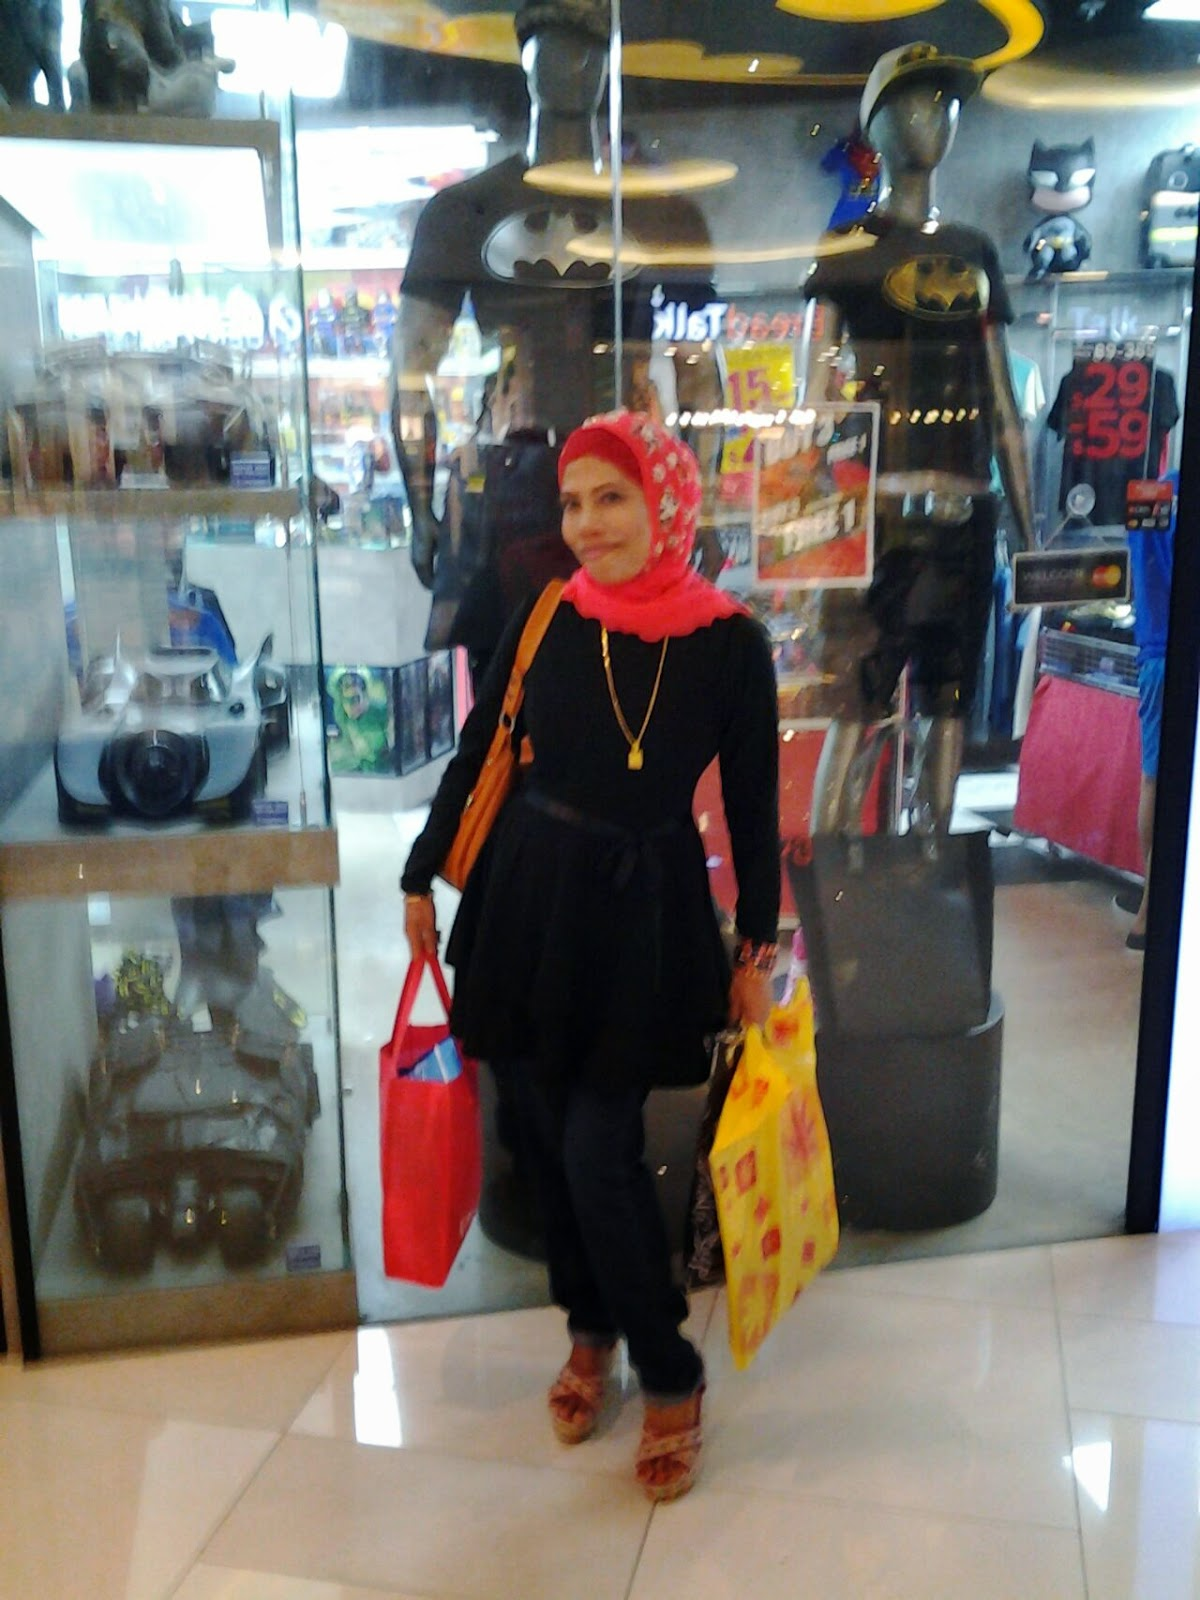 Johariwindows December 2014 Damn I Love Indonesia New Kaos Pria Red Hd White Merah L A And Exciting Business Travel Portal Launched At Johorbahrumy Press Release Rocket